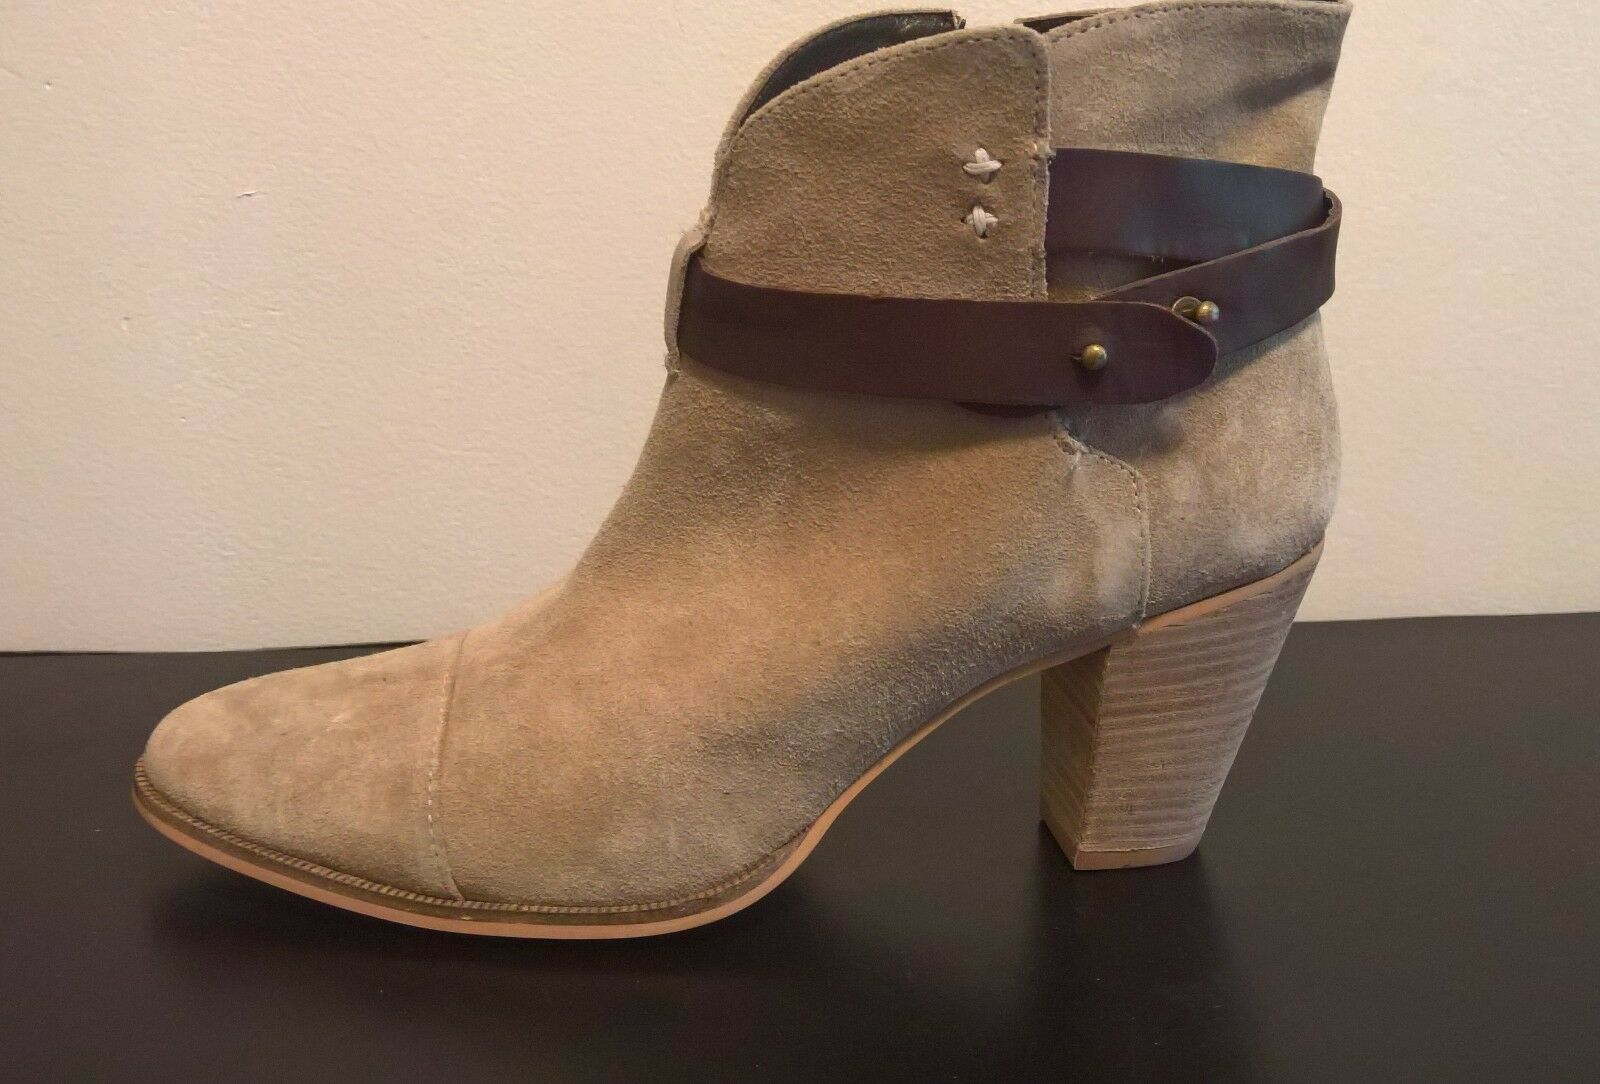 Warehouse Shoes N More Taupe Suede Leather Straps Ankle boots with Strap size 42